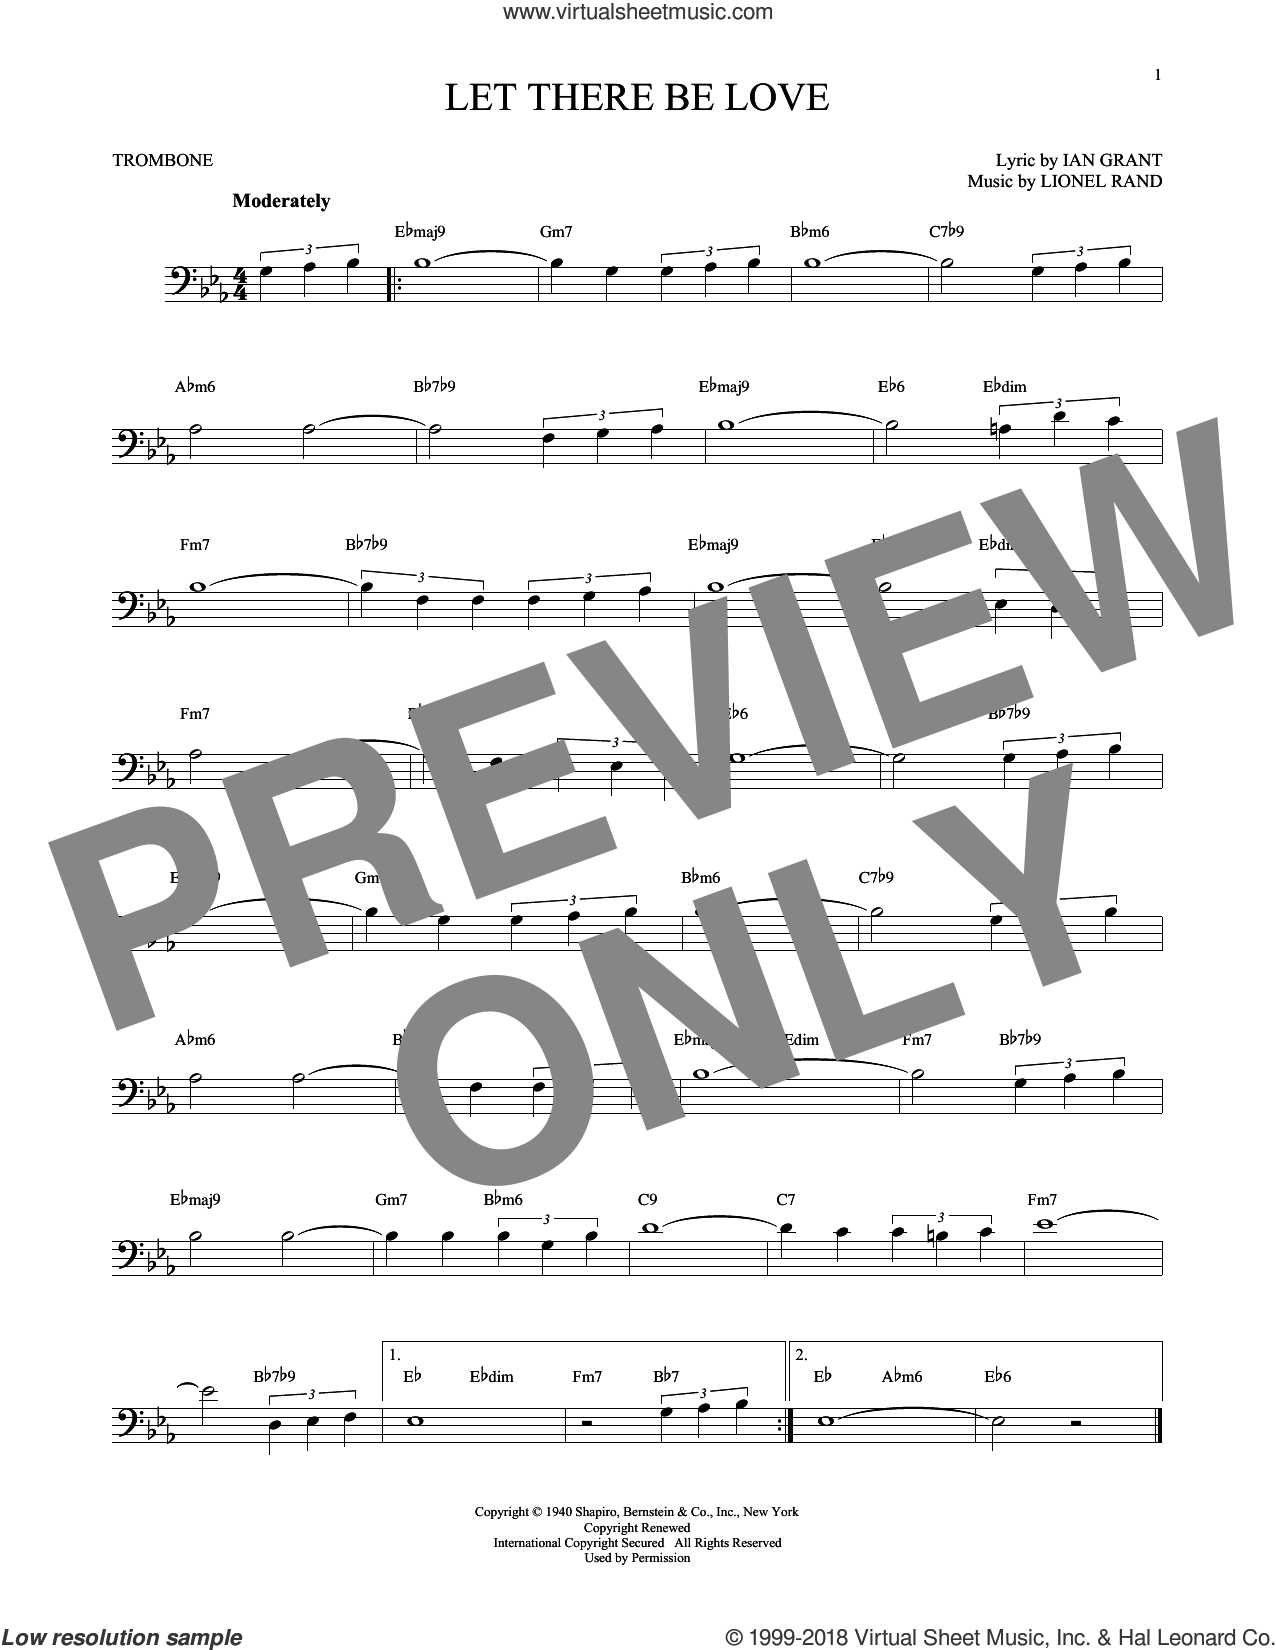 Let There Be Love sheet music for trombone solo by Ian Grant and Lionel Rand, intermediate skill level